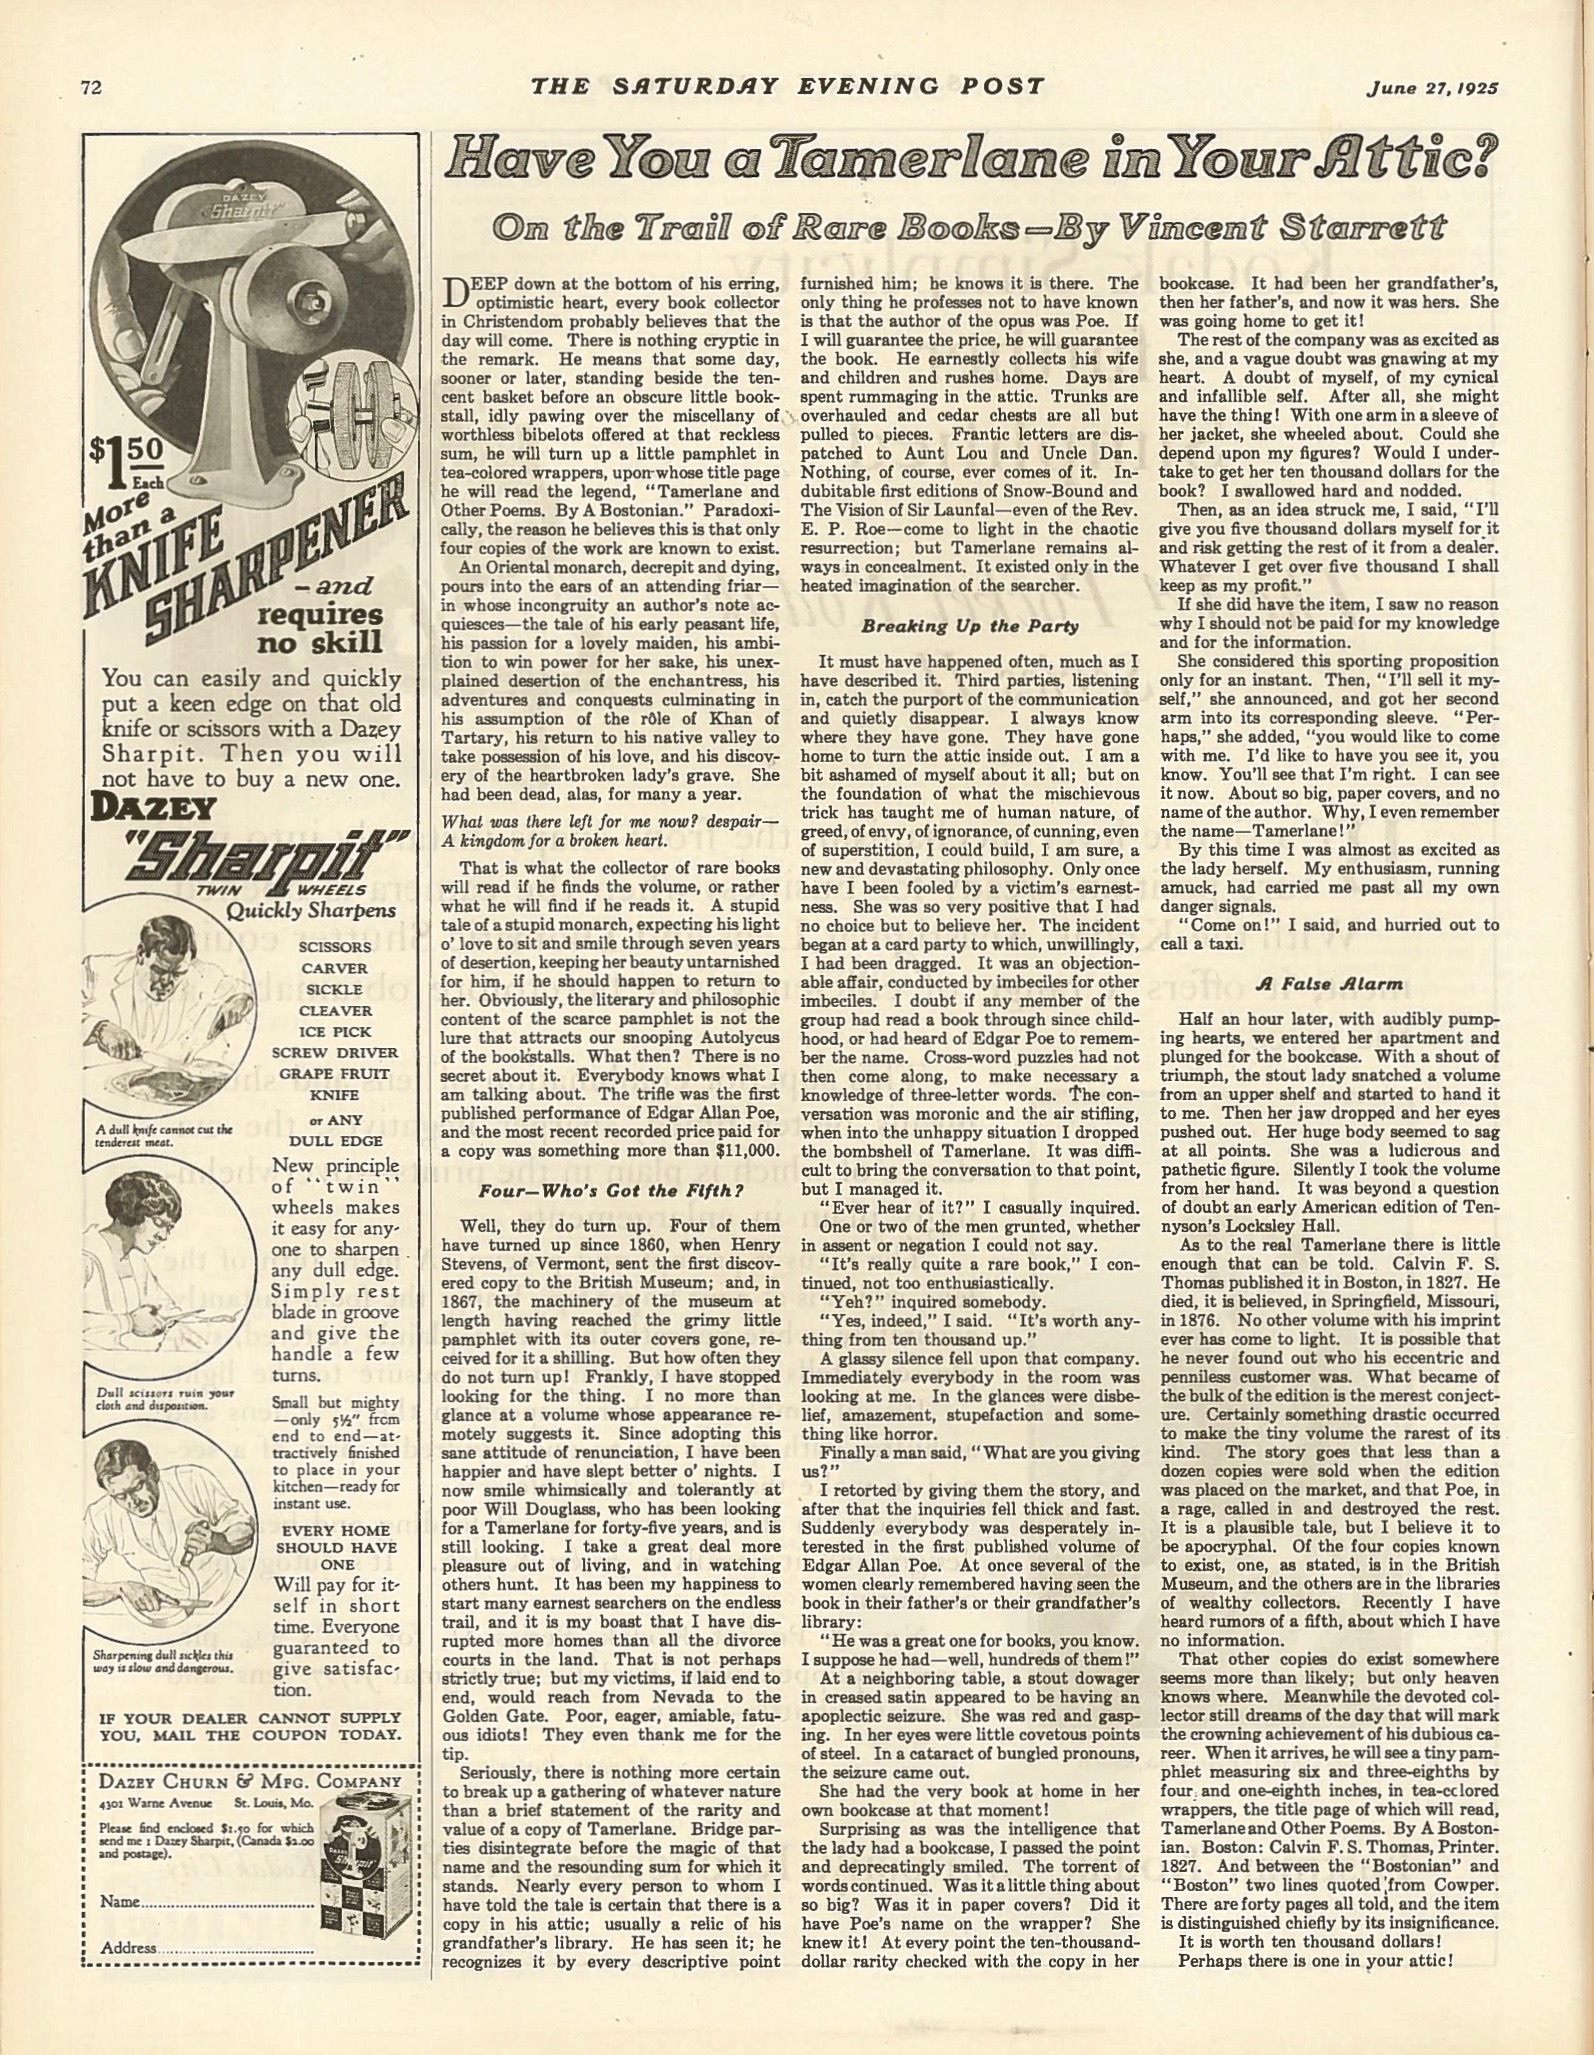 Starrett's article as it appeared in  The Saturday Evening Post . (By the way, that's a great deal on a knife sharpener.)